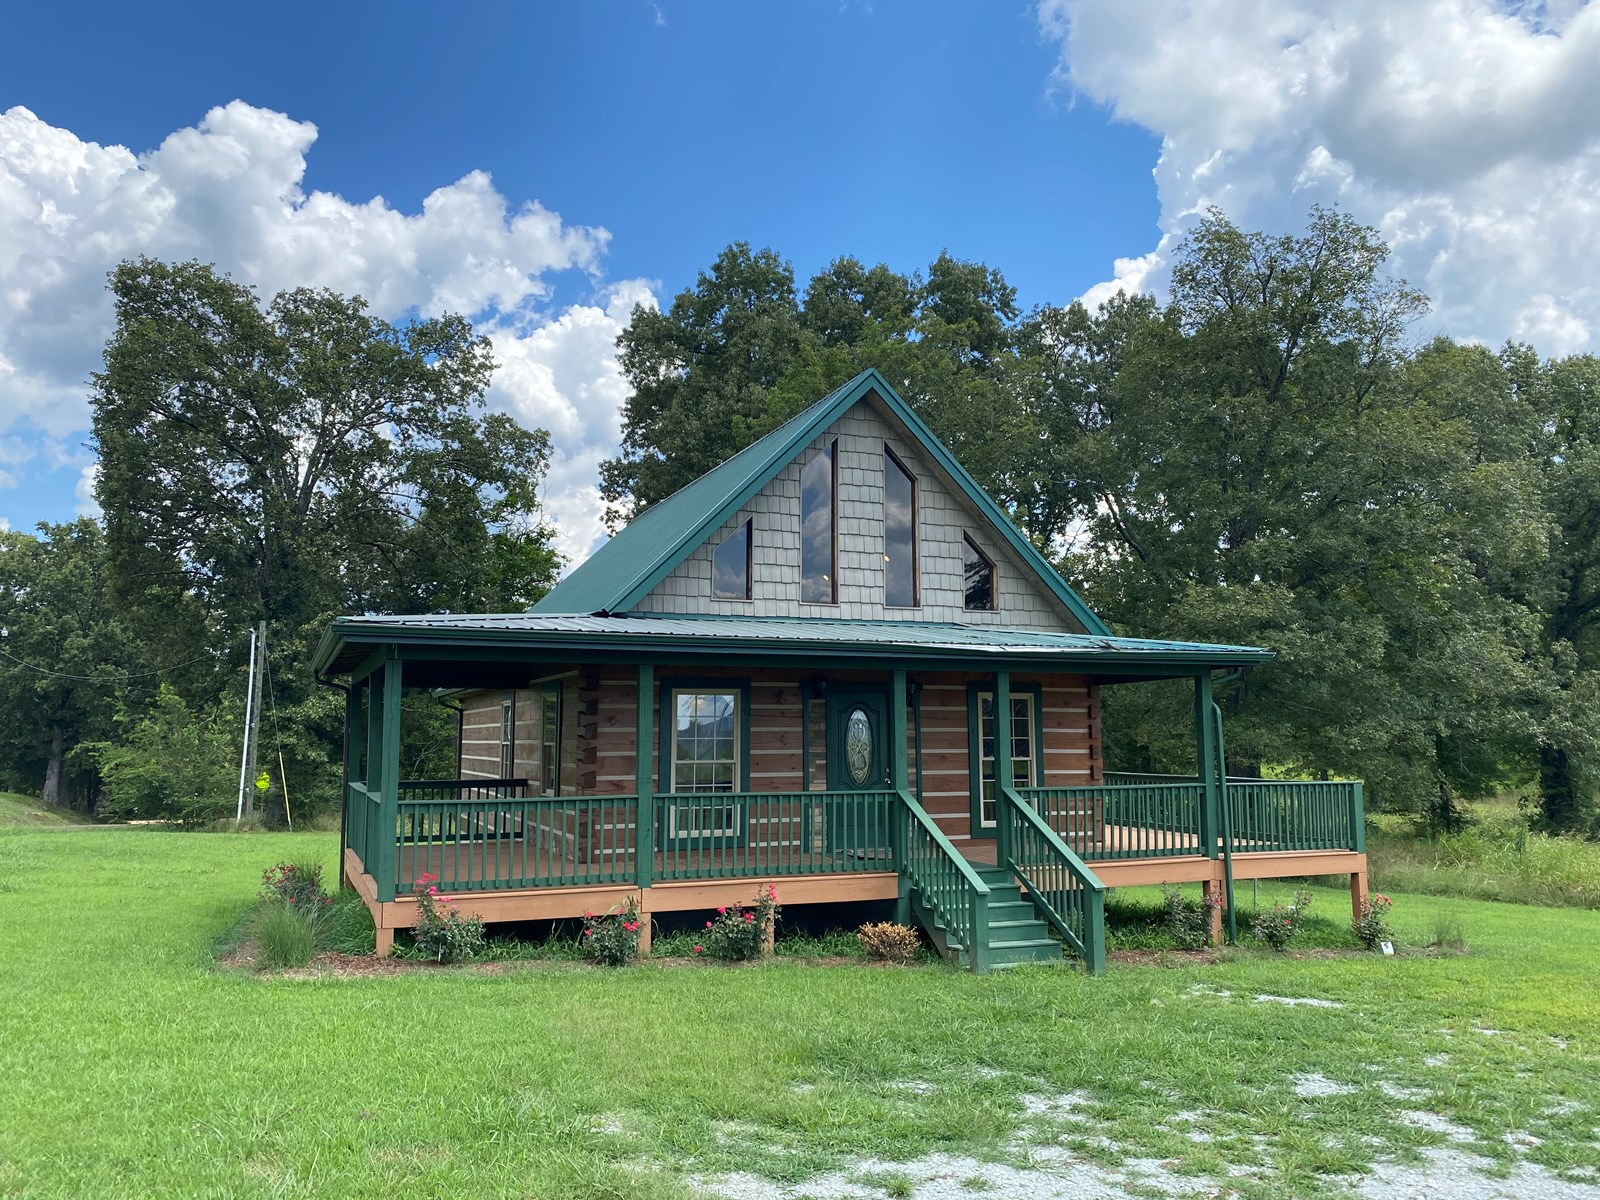 LOG CABIN FOR SALE IN TN NEAR FISHING, BOATING ON TN RIVER